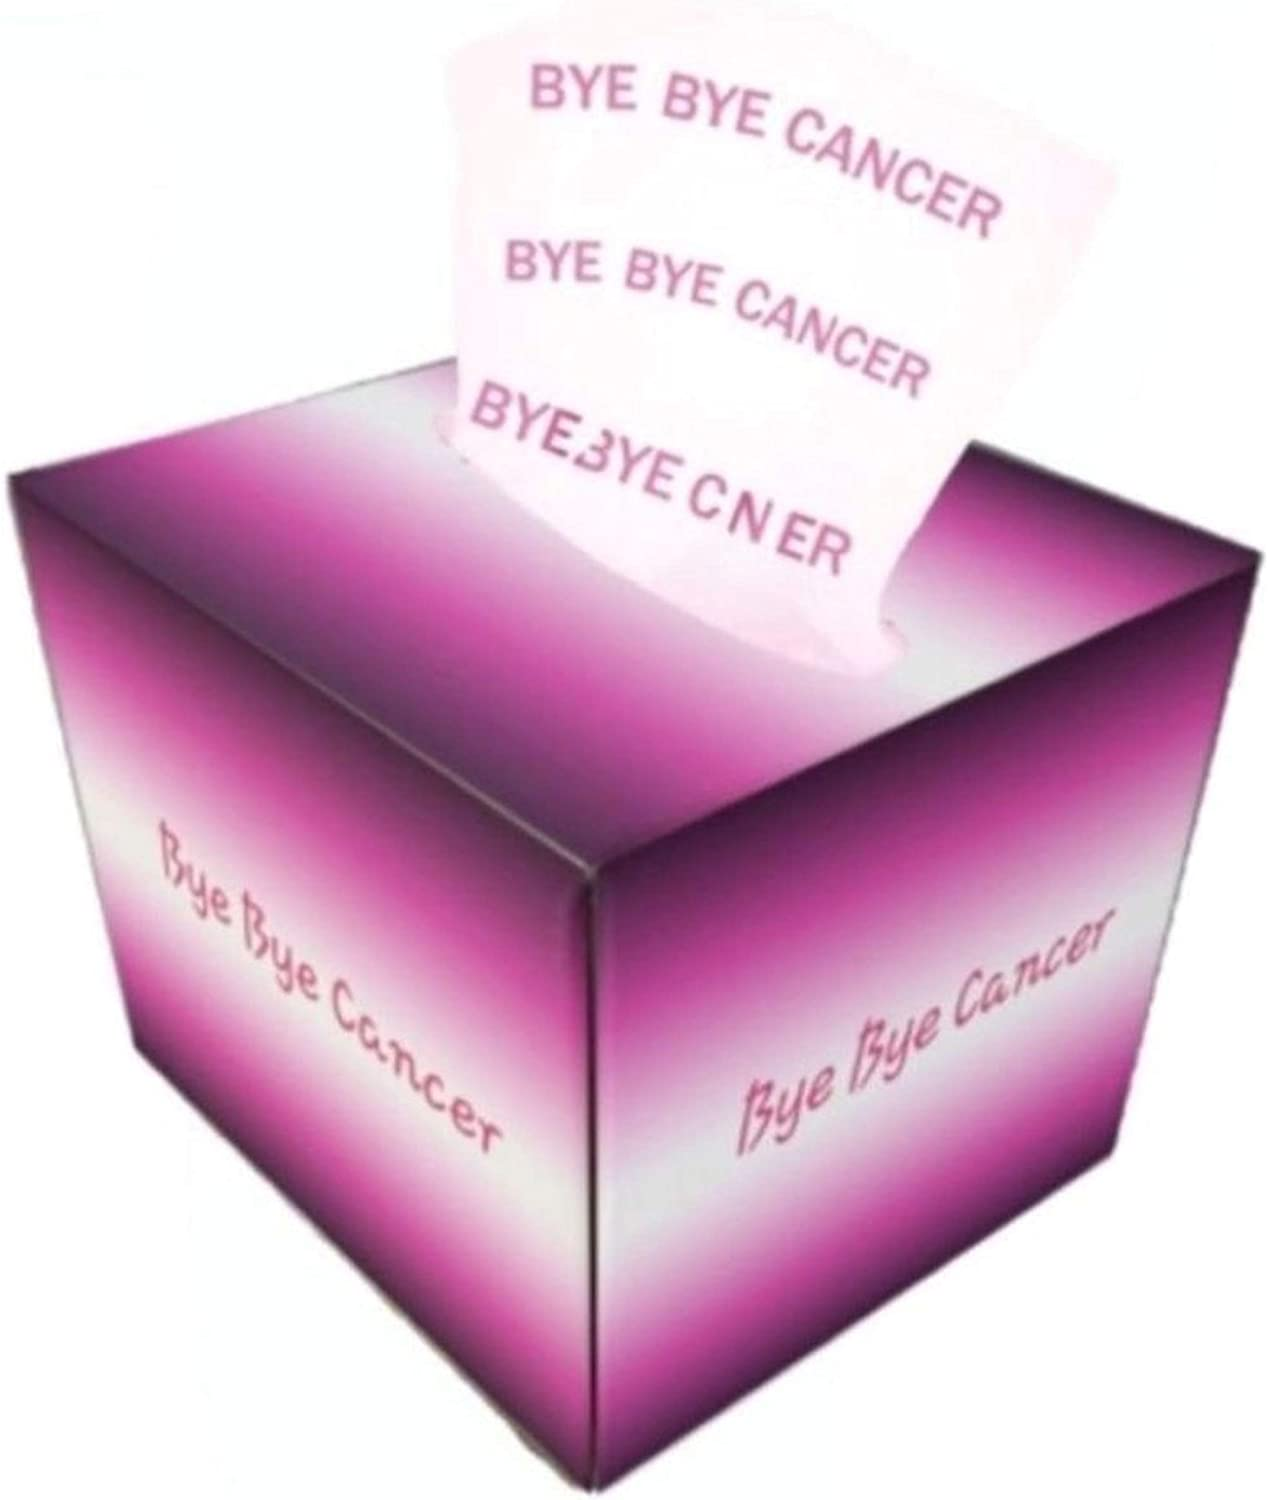 ByeBye New product type Clearance SALE! Limited time! Cancer